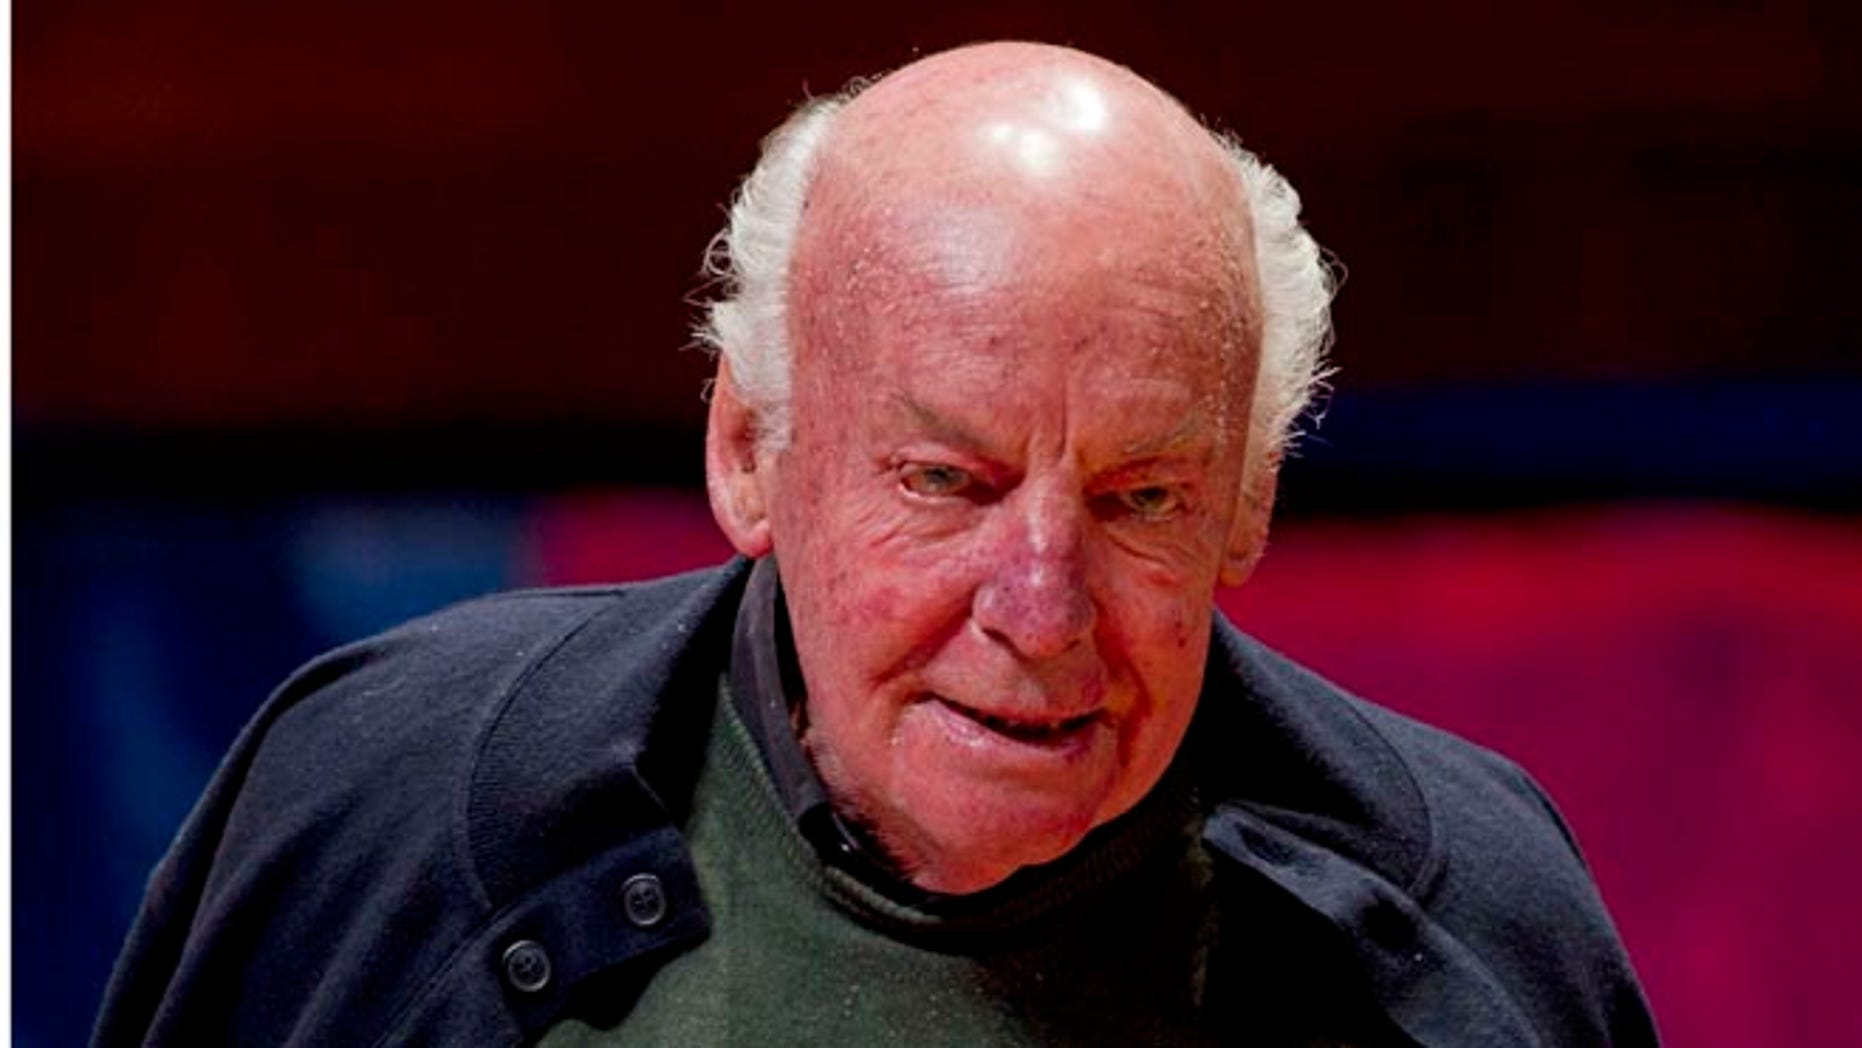 Eduardo Galeano in a Nov. 5, 2012 file photo.